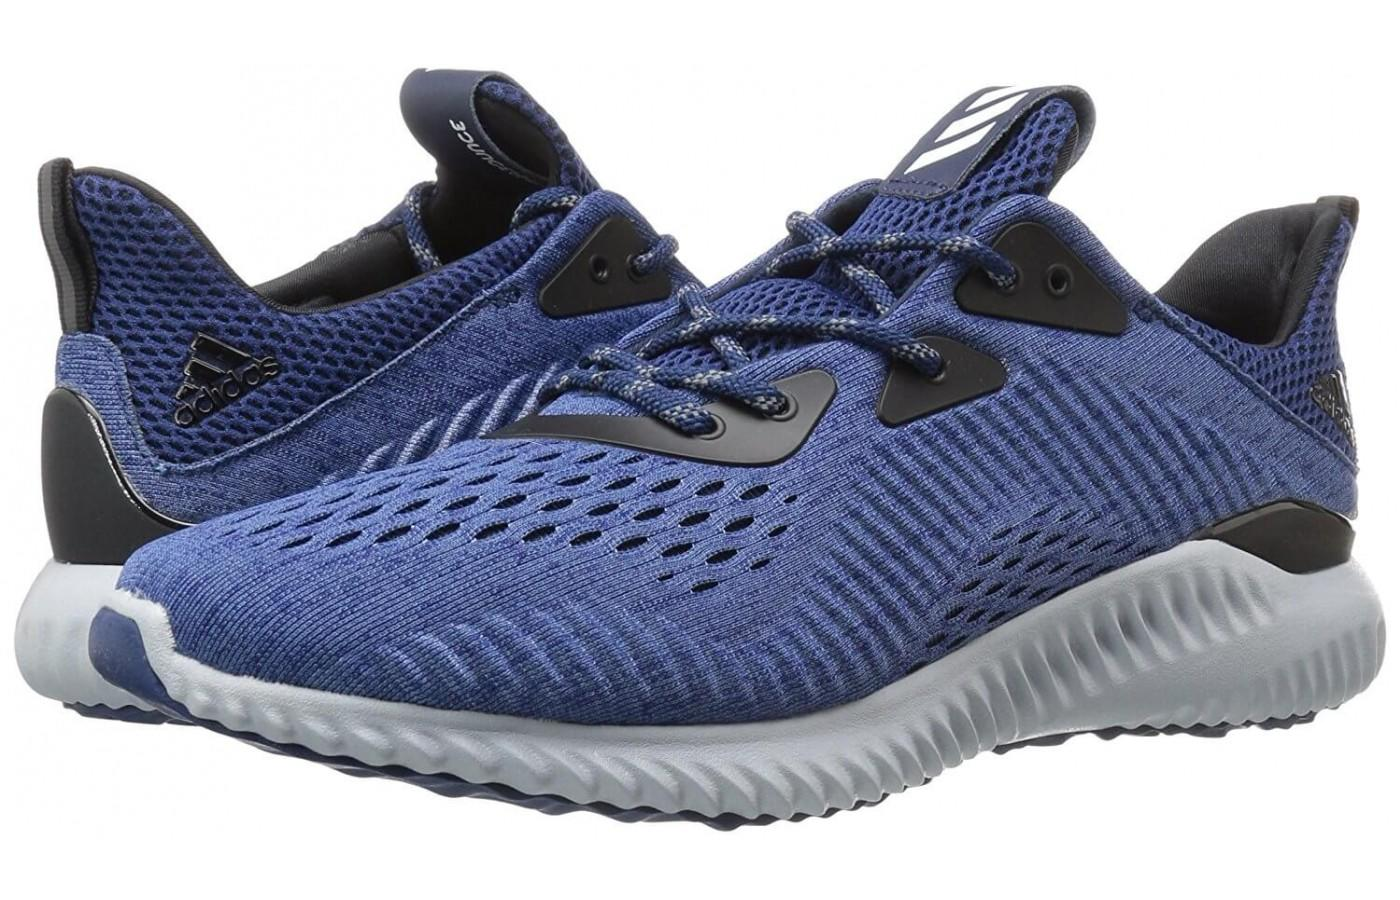 0676a9d207cbe Adidas Alphabounce EM Review - Buy or Not in May 2019